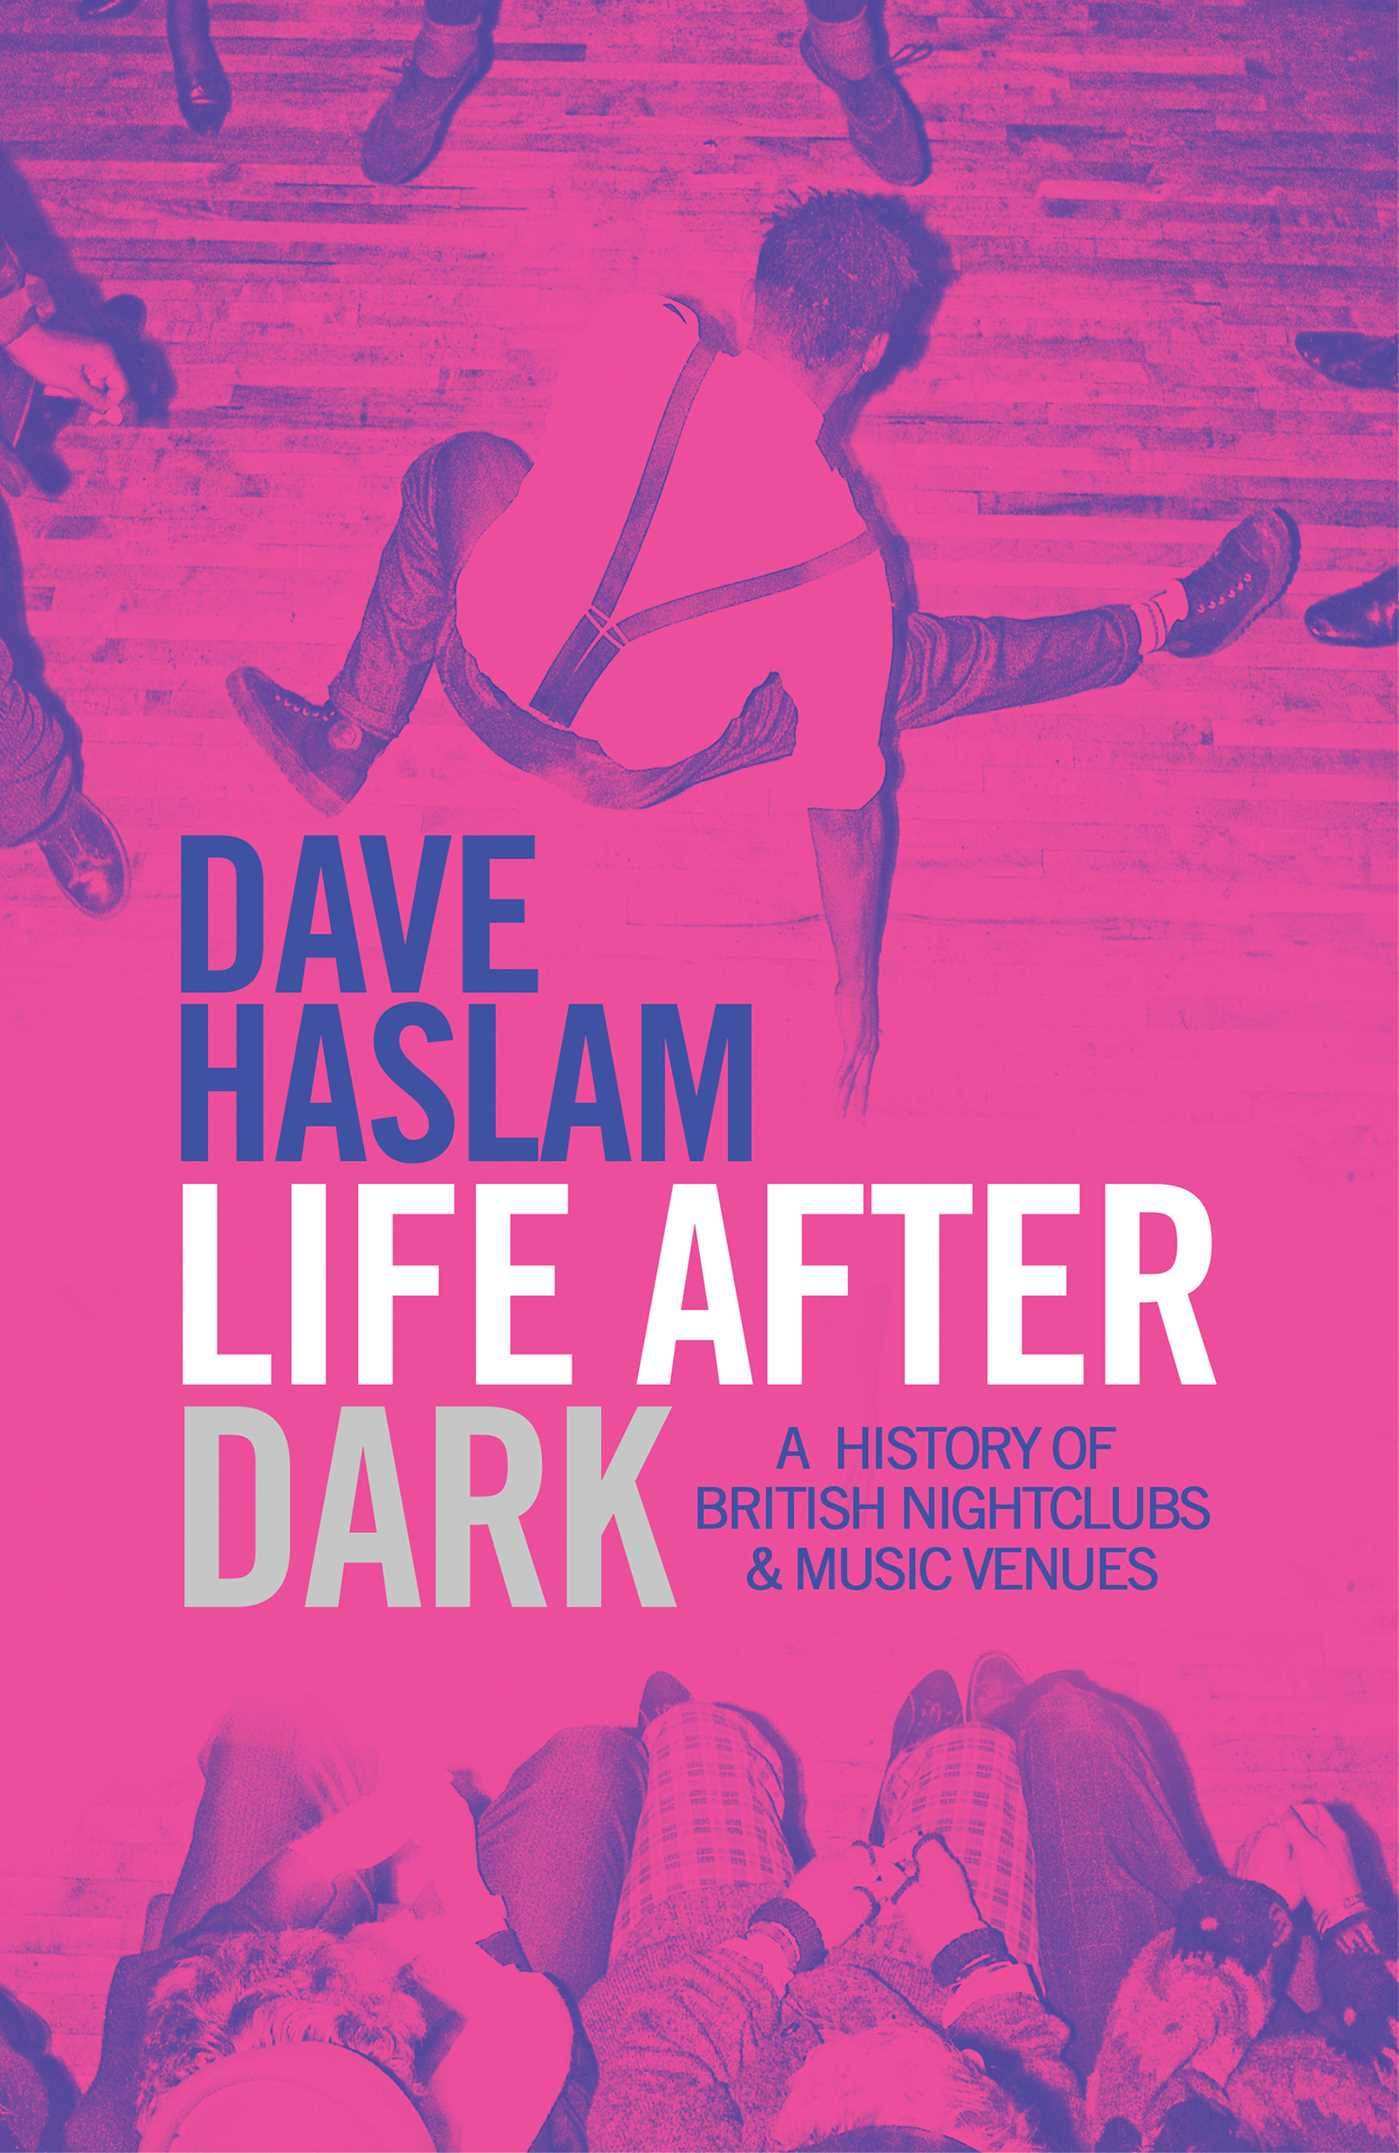 Dave Haslam's  Life After Dark . Incredibly insightful book that should adorn every music lover's bookshelf.